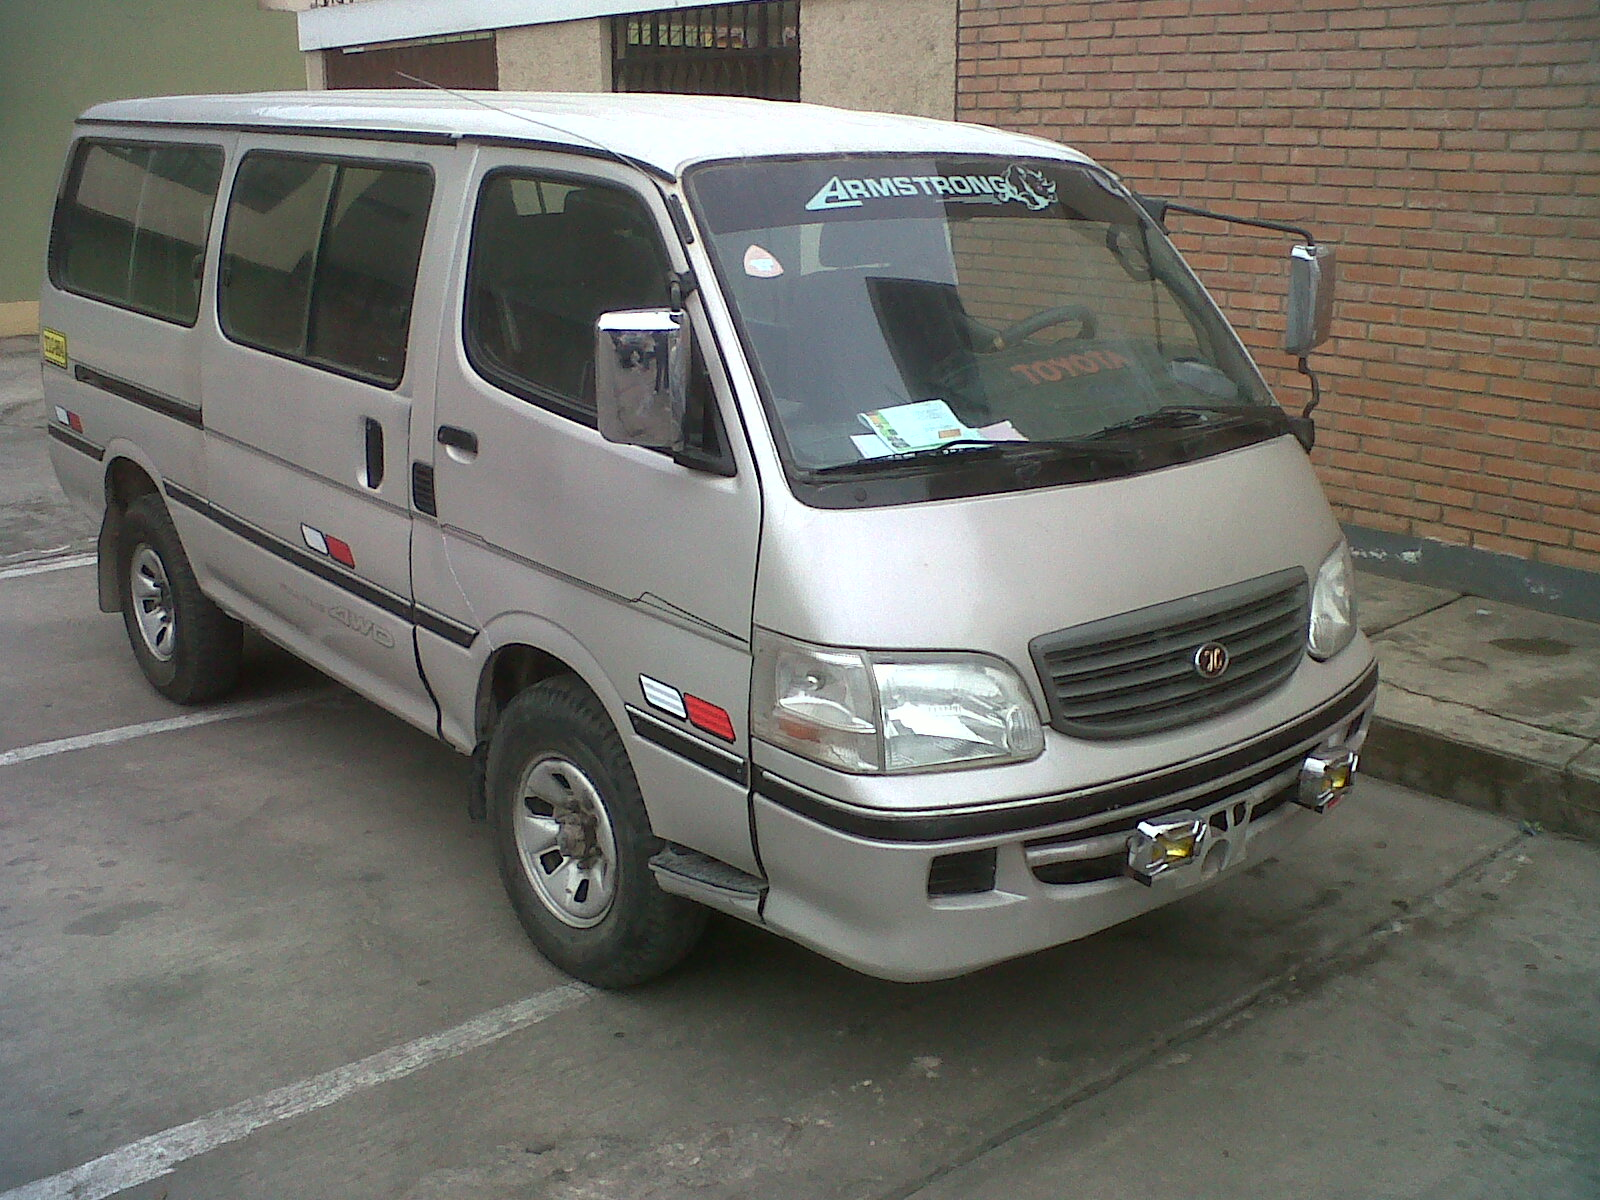 Toyota Hiace 2001 photo - 3